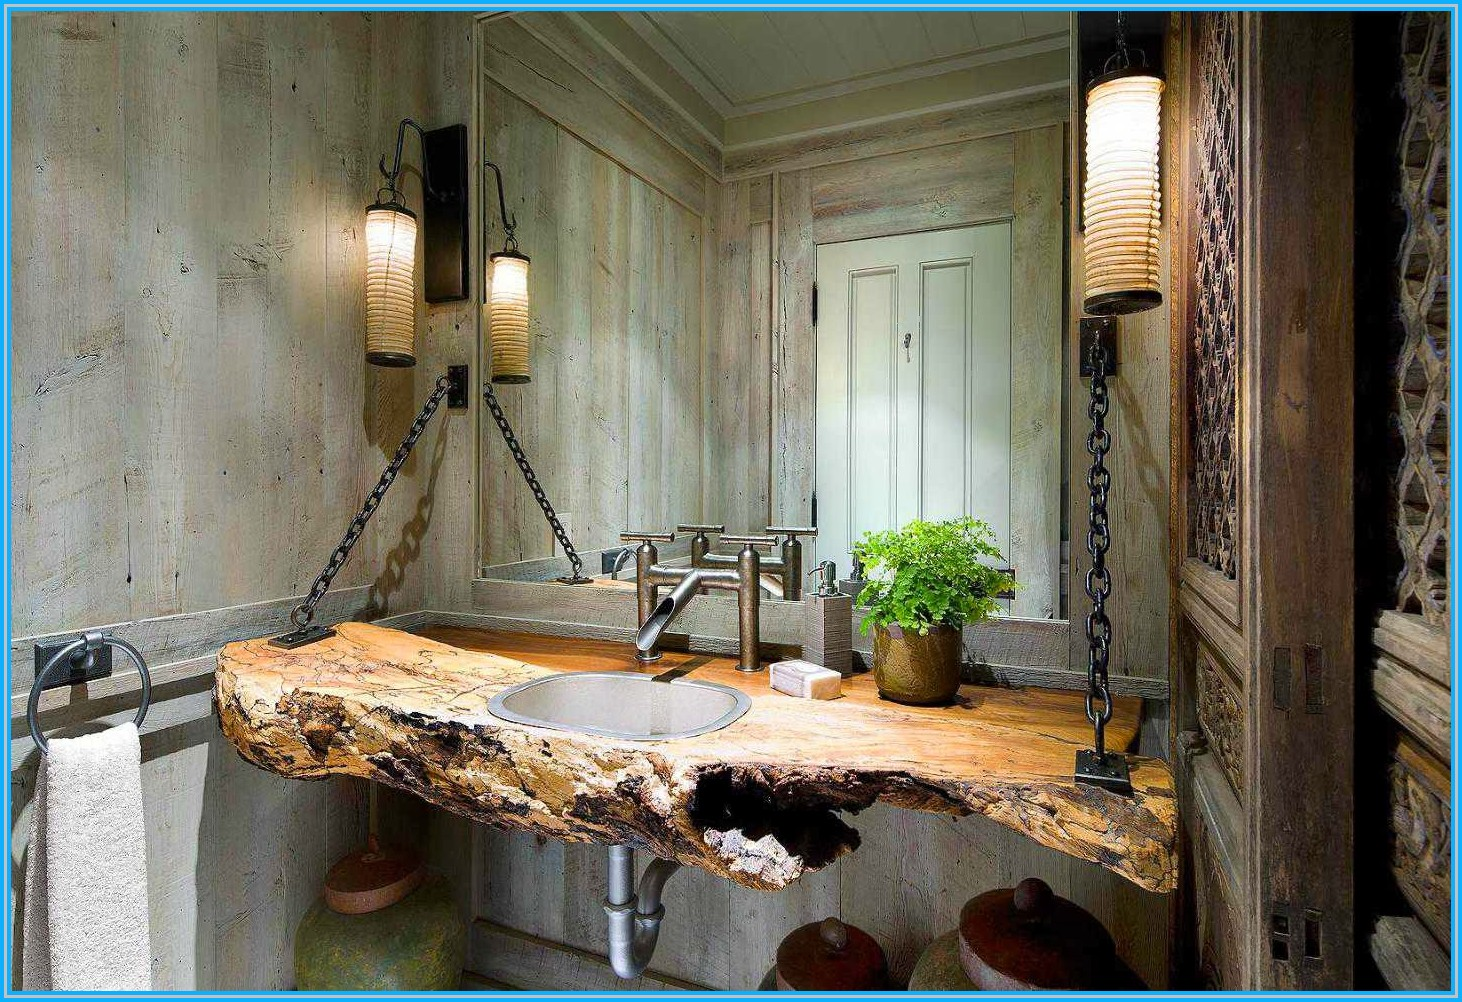 Rustic bathrooms designs - Ad Ideas That Will Add Coziness And Warmth Why A Rustic Design